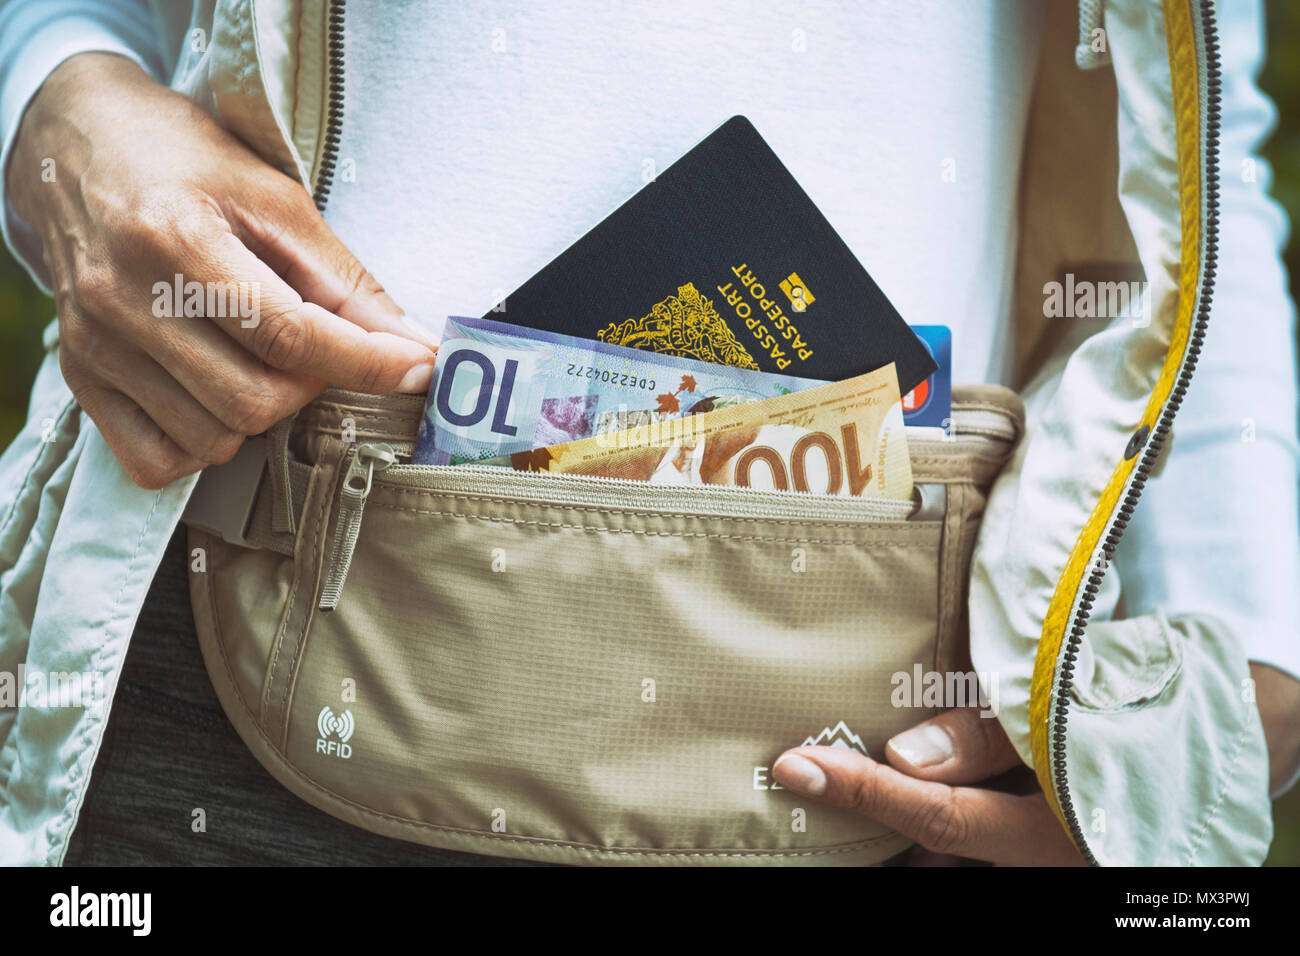 Money Belt, Money Travel Documents,Credit Cards, Secure Waist Wallet - Stock Image